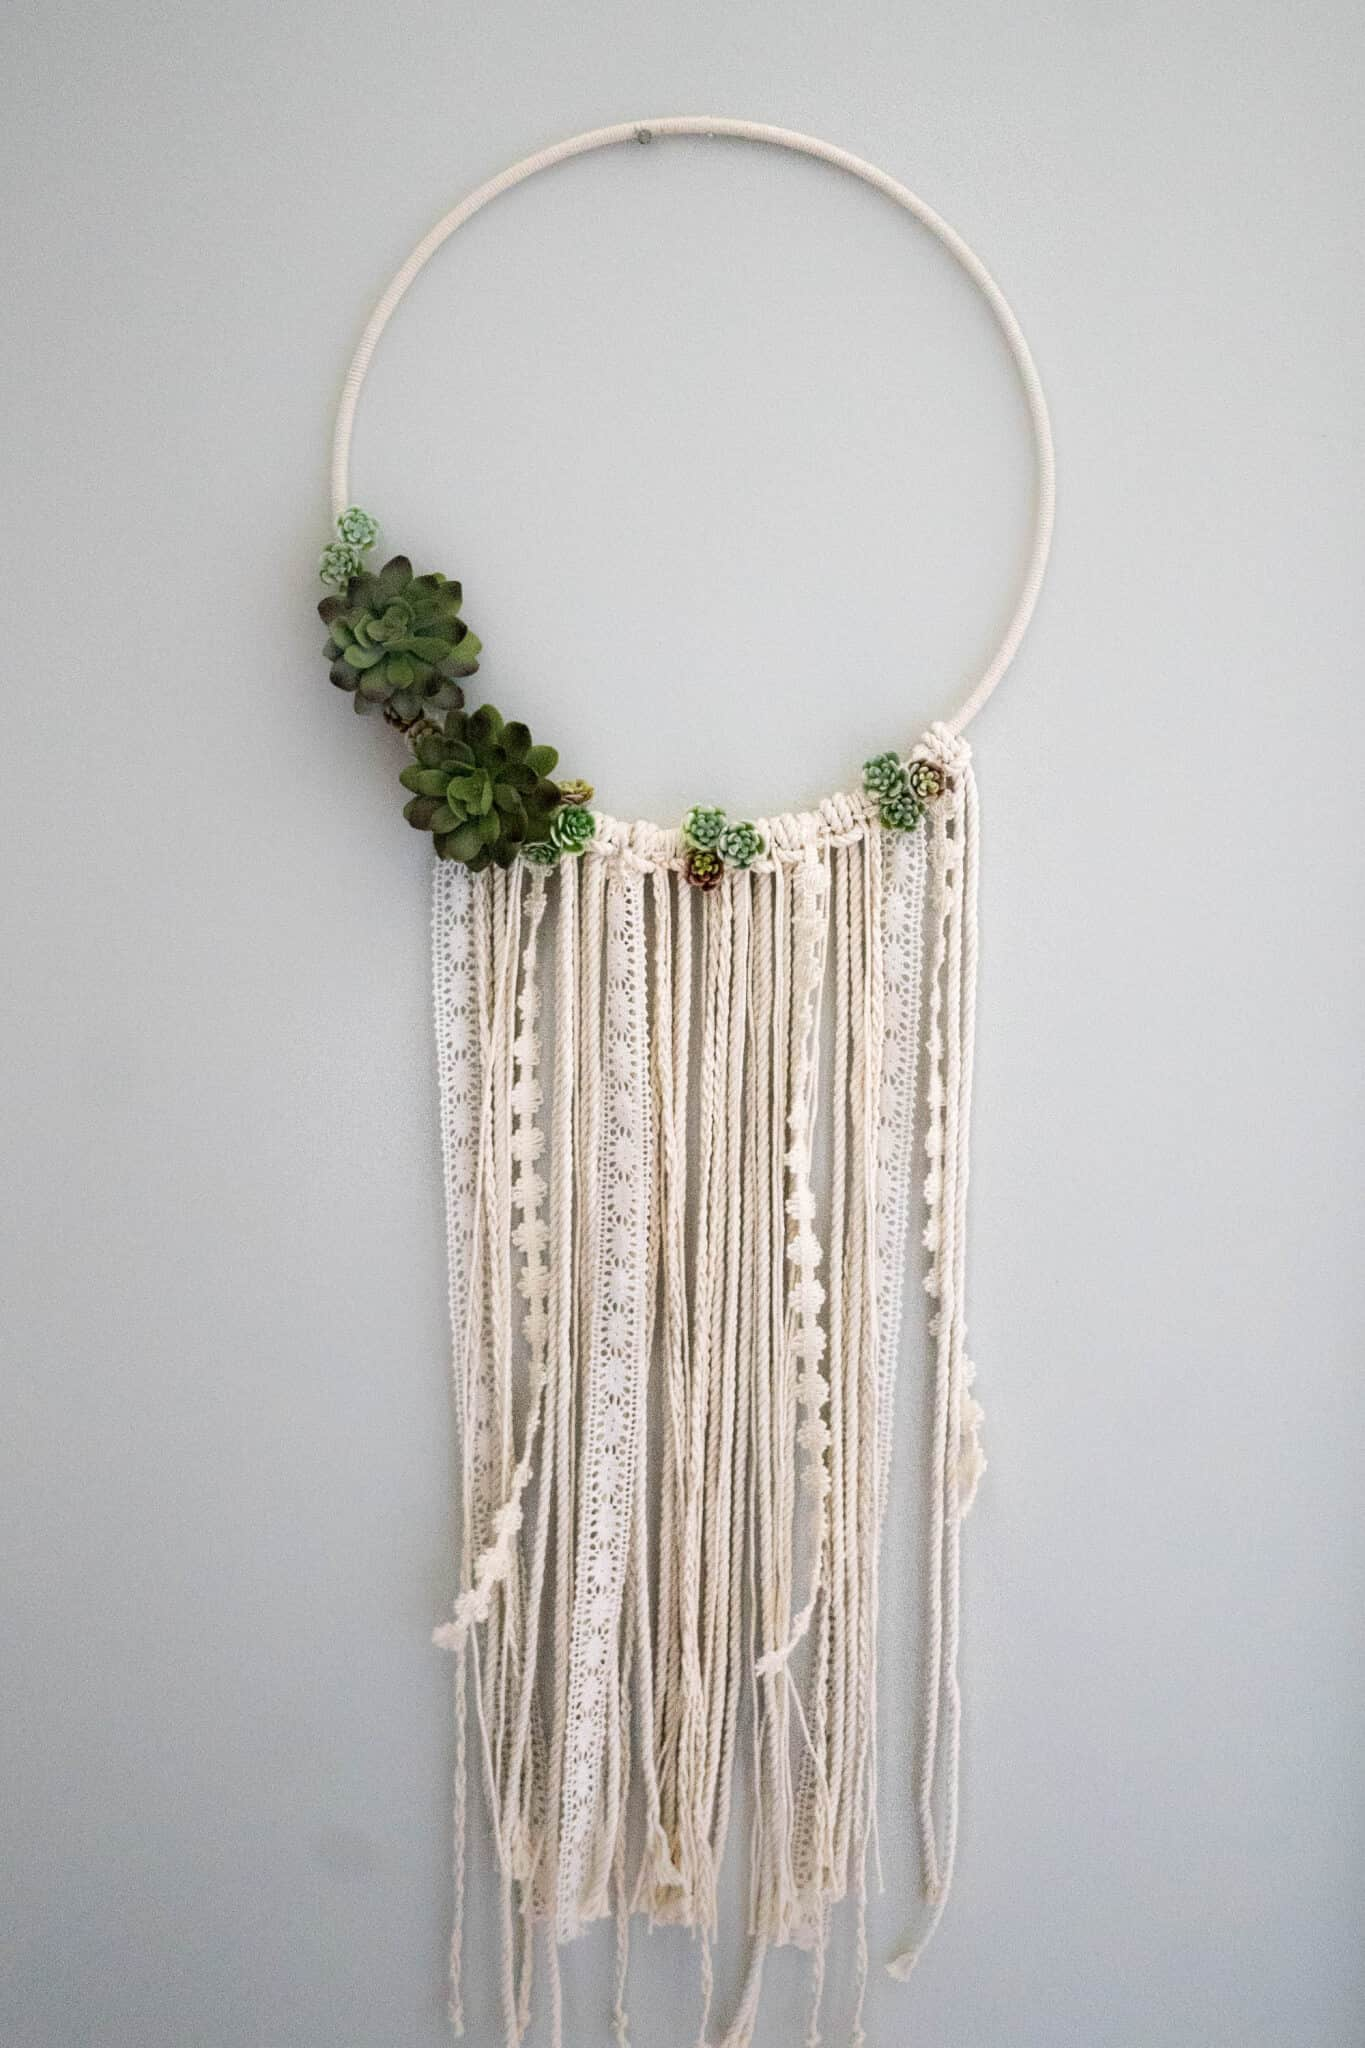 Diy succulent dreamcatcher